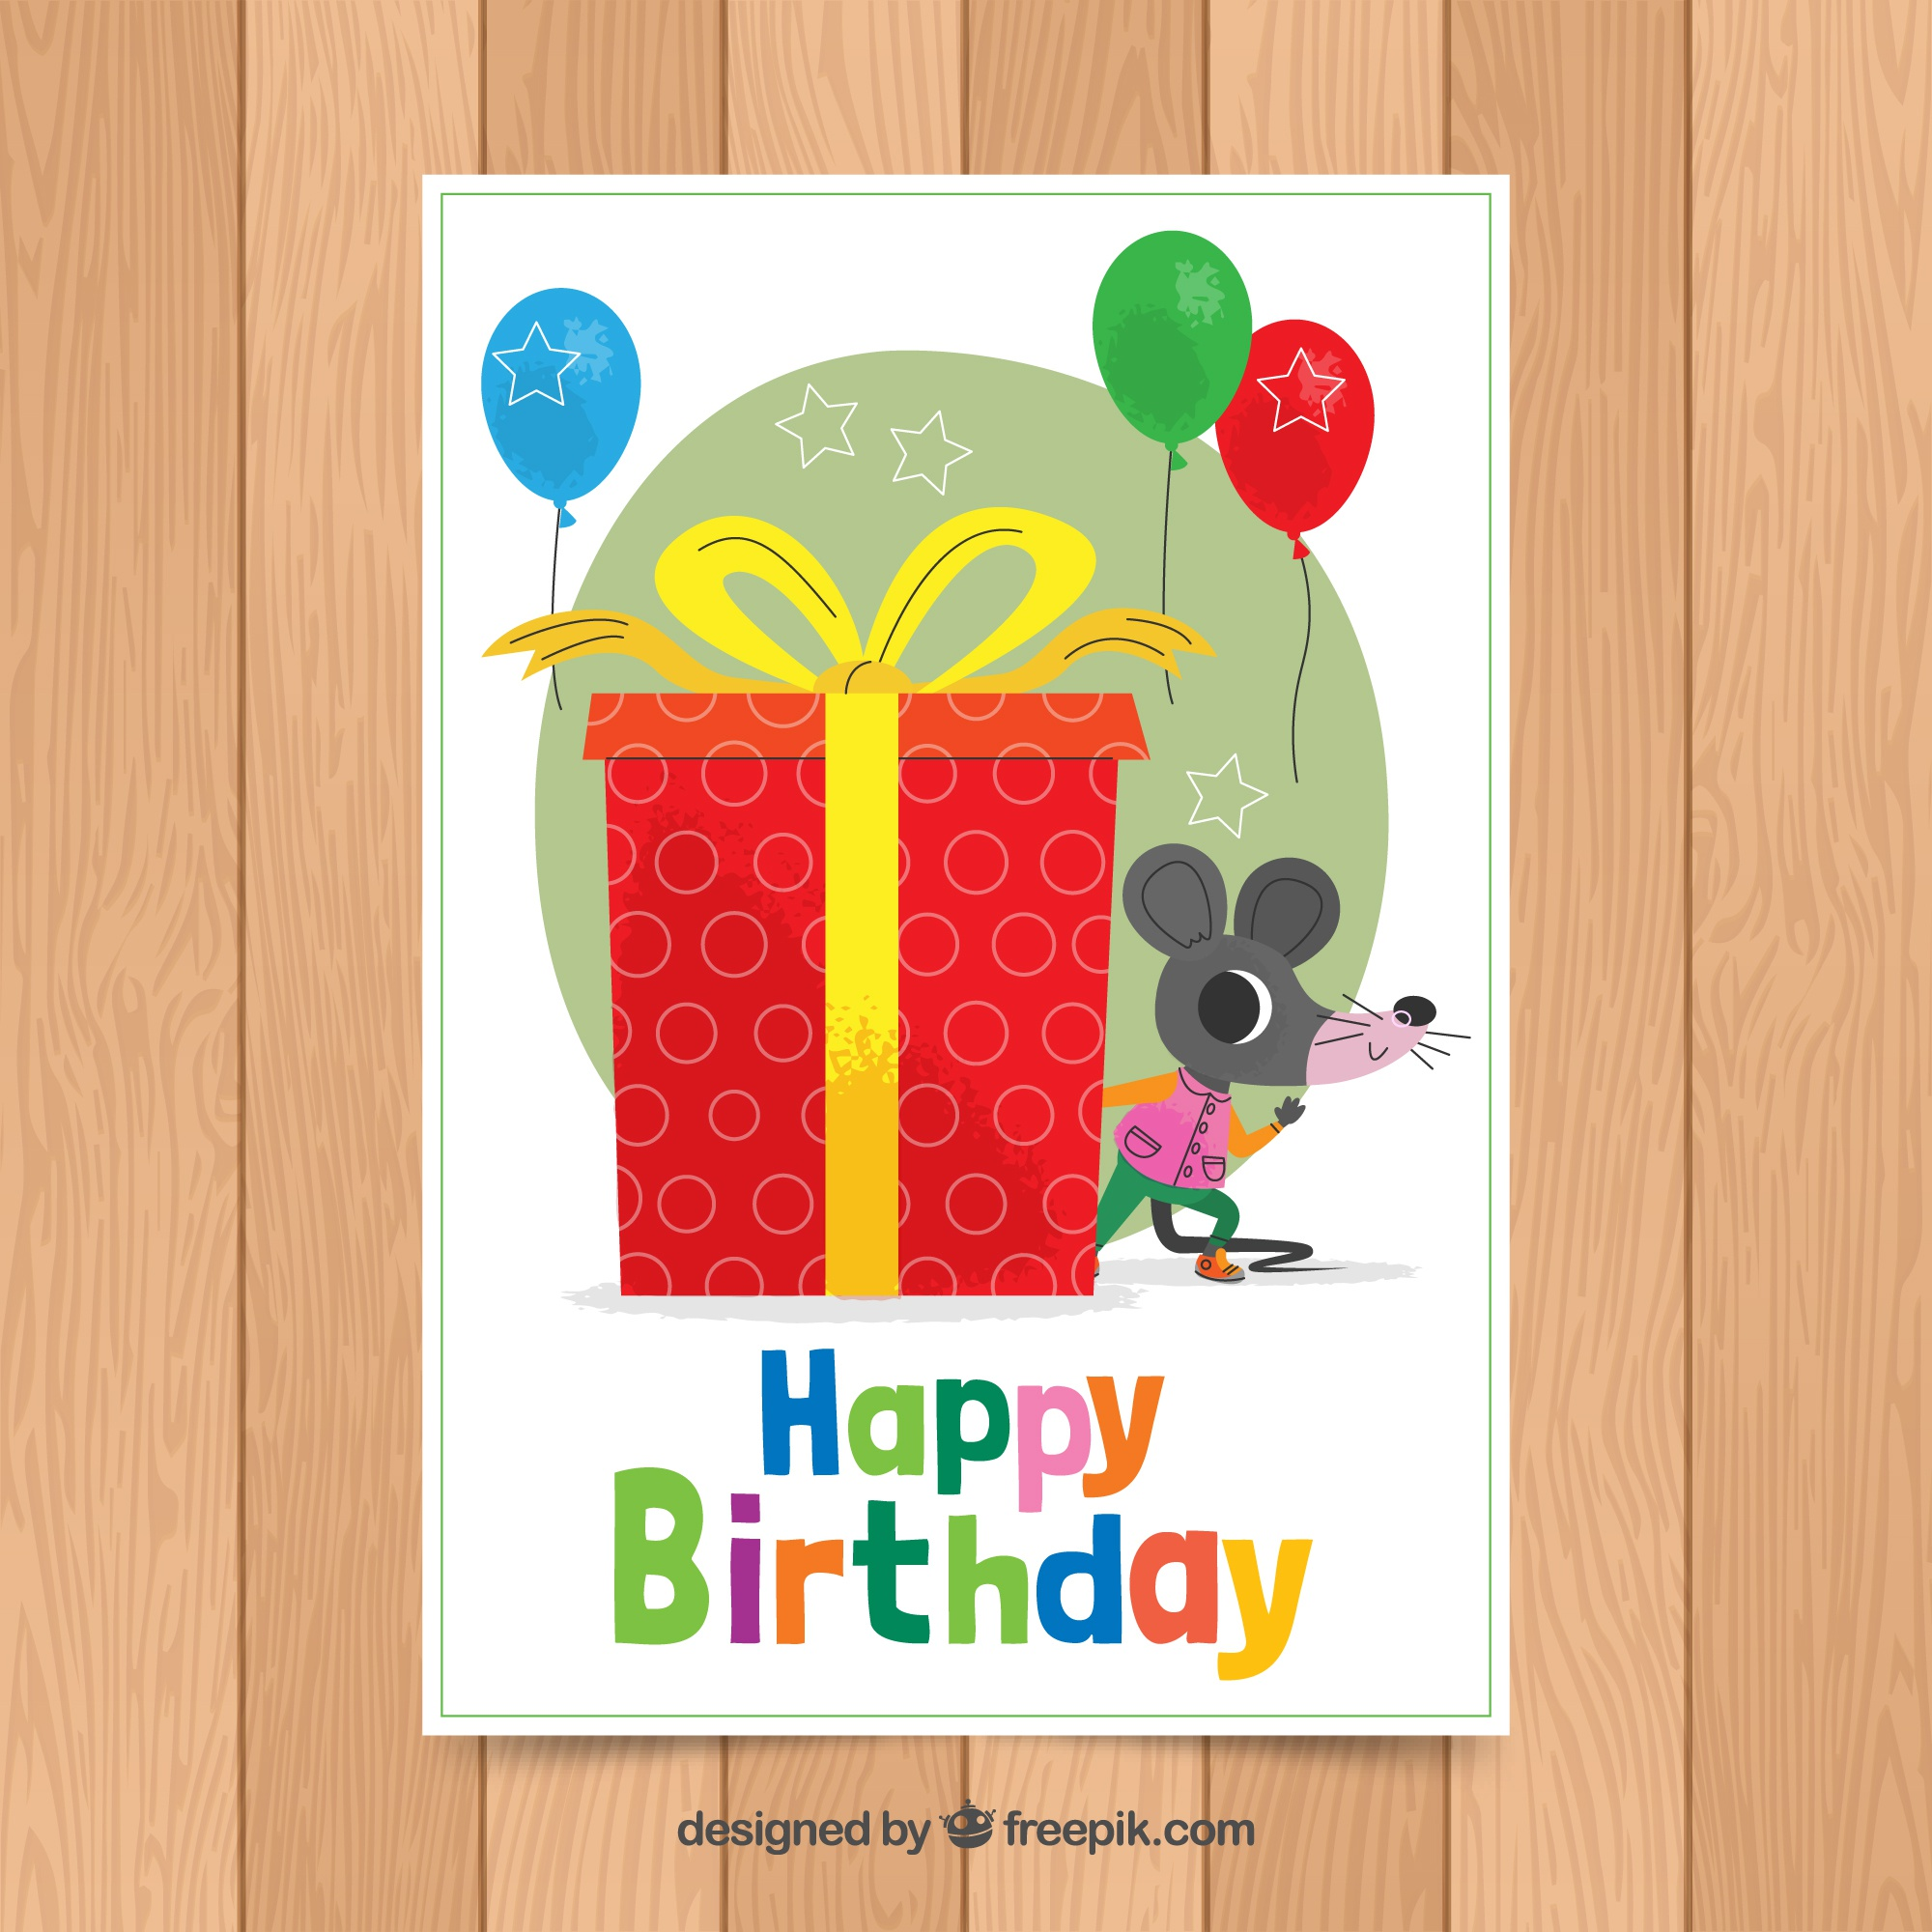 Birthday card template with cute mouse